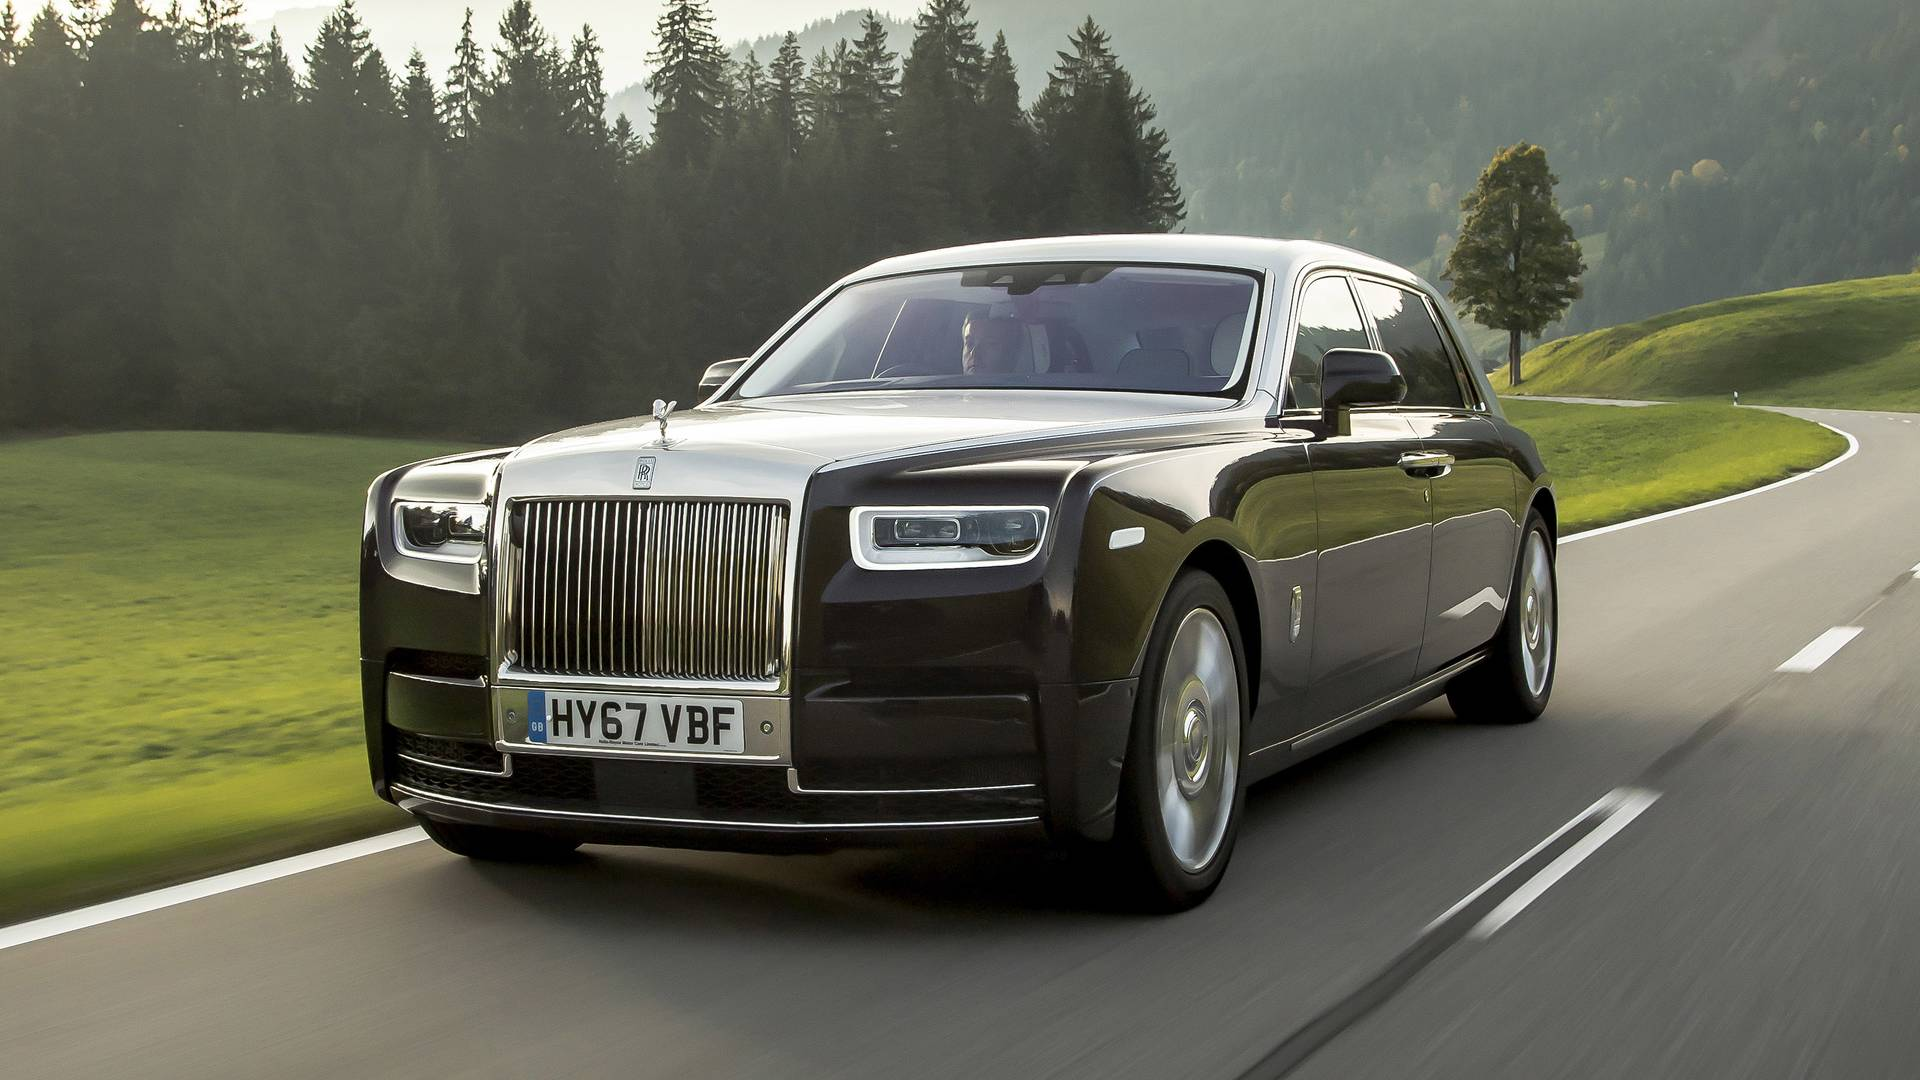 Tucson 2017 Vs Tucson 2018 >> 100+ [ Roll Royce Car 2018 ] | 2018 Rolls Royce Phantom Wheel Hd Wallpaper 4,Rolls Royce Phantom ...